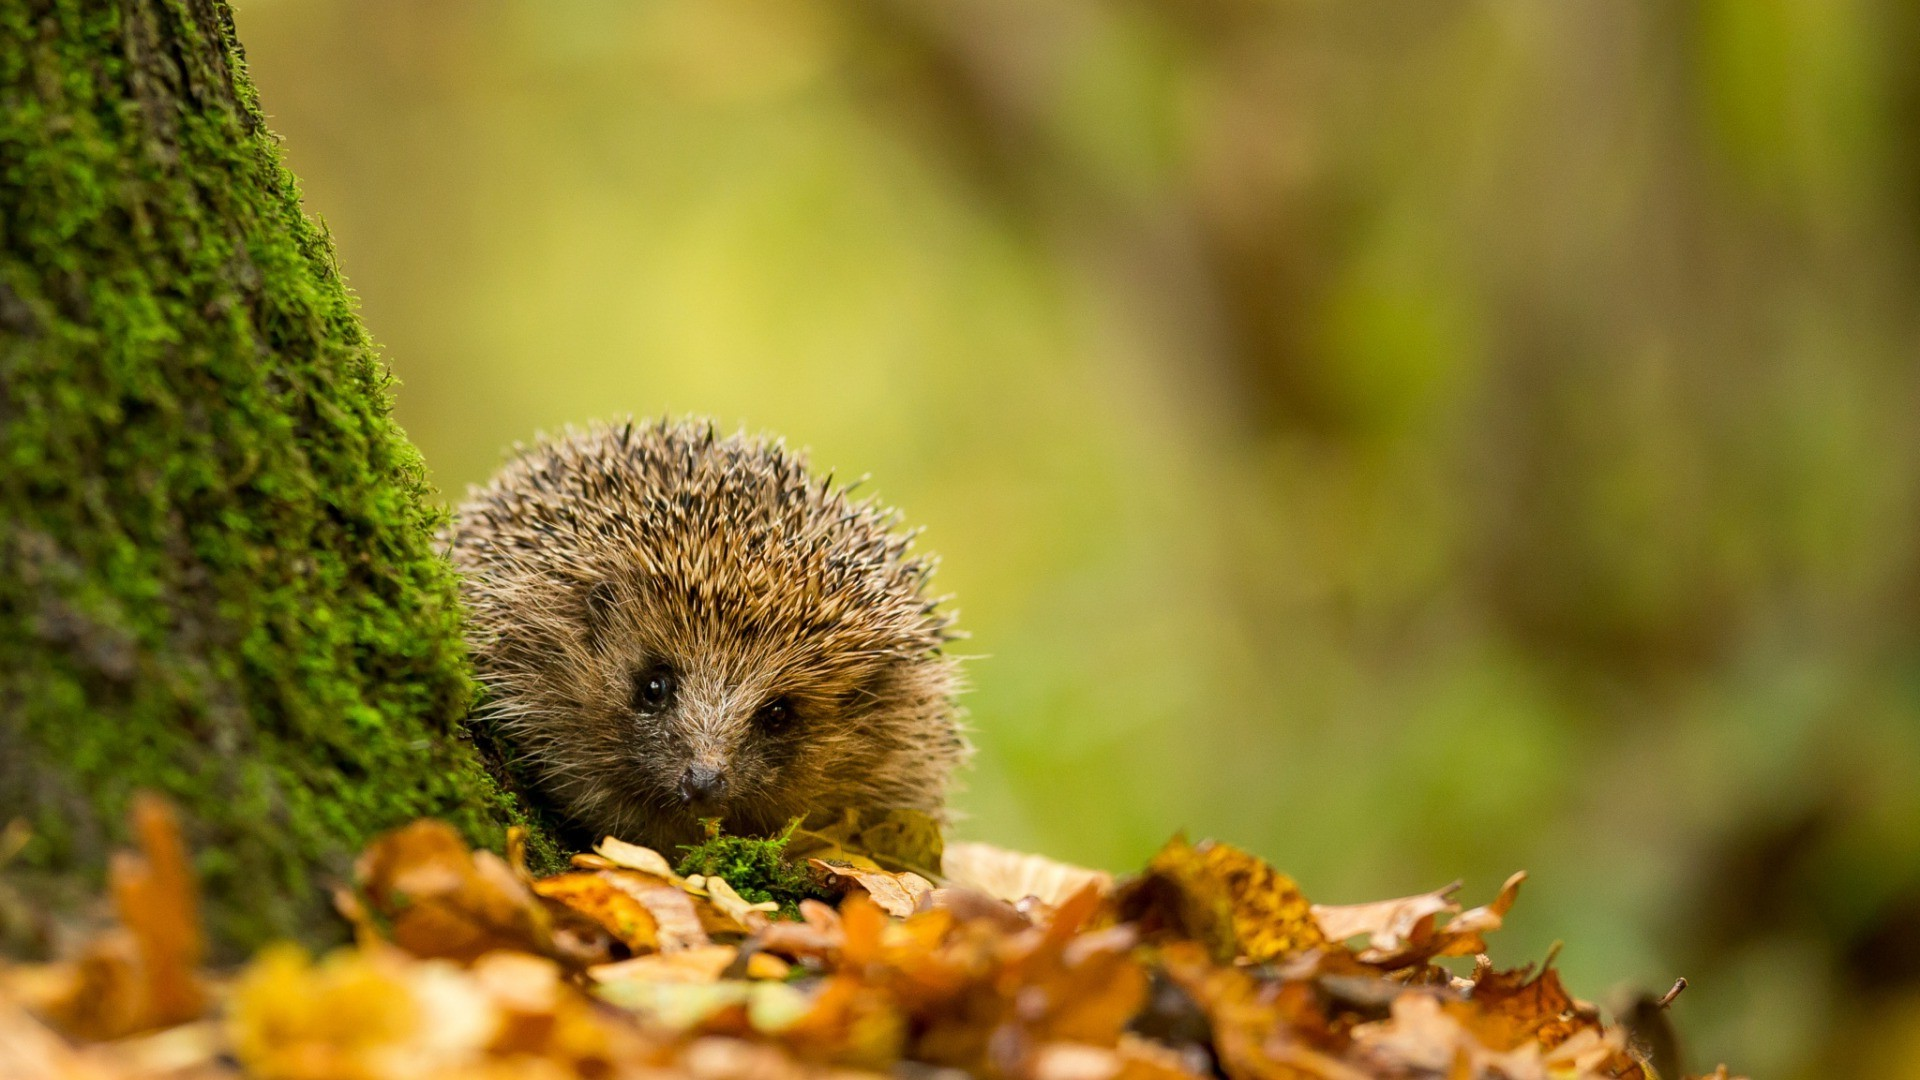 Res: 1920x1080, nature, Trees, Leaves, Branch, Animals, Hedgehog, Moss, Depth Of Field, Fall,  Closeup Wallpapers HD / Desktop and Mobile Backgrounds